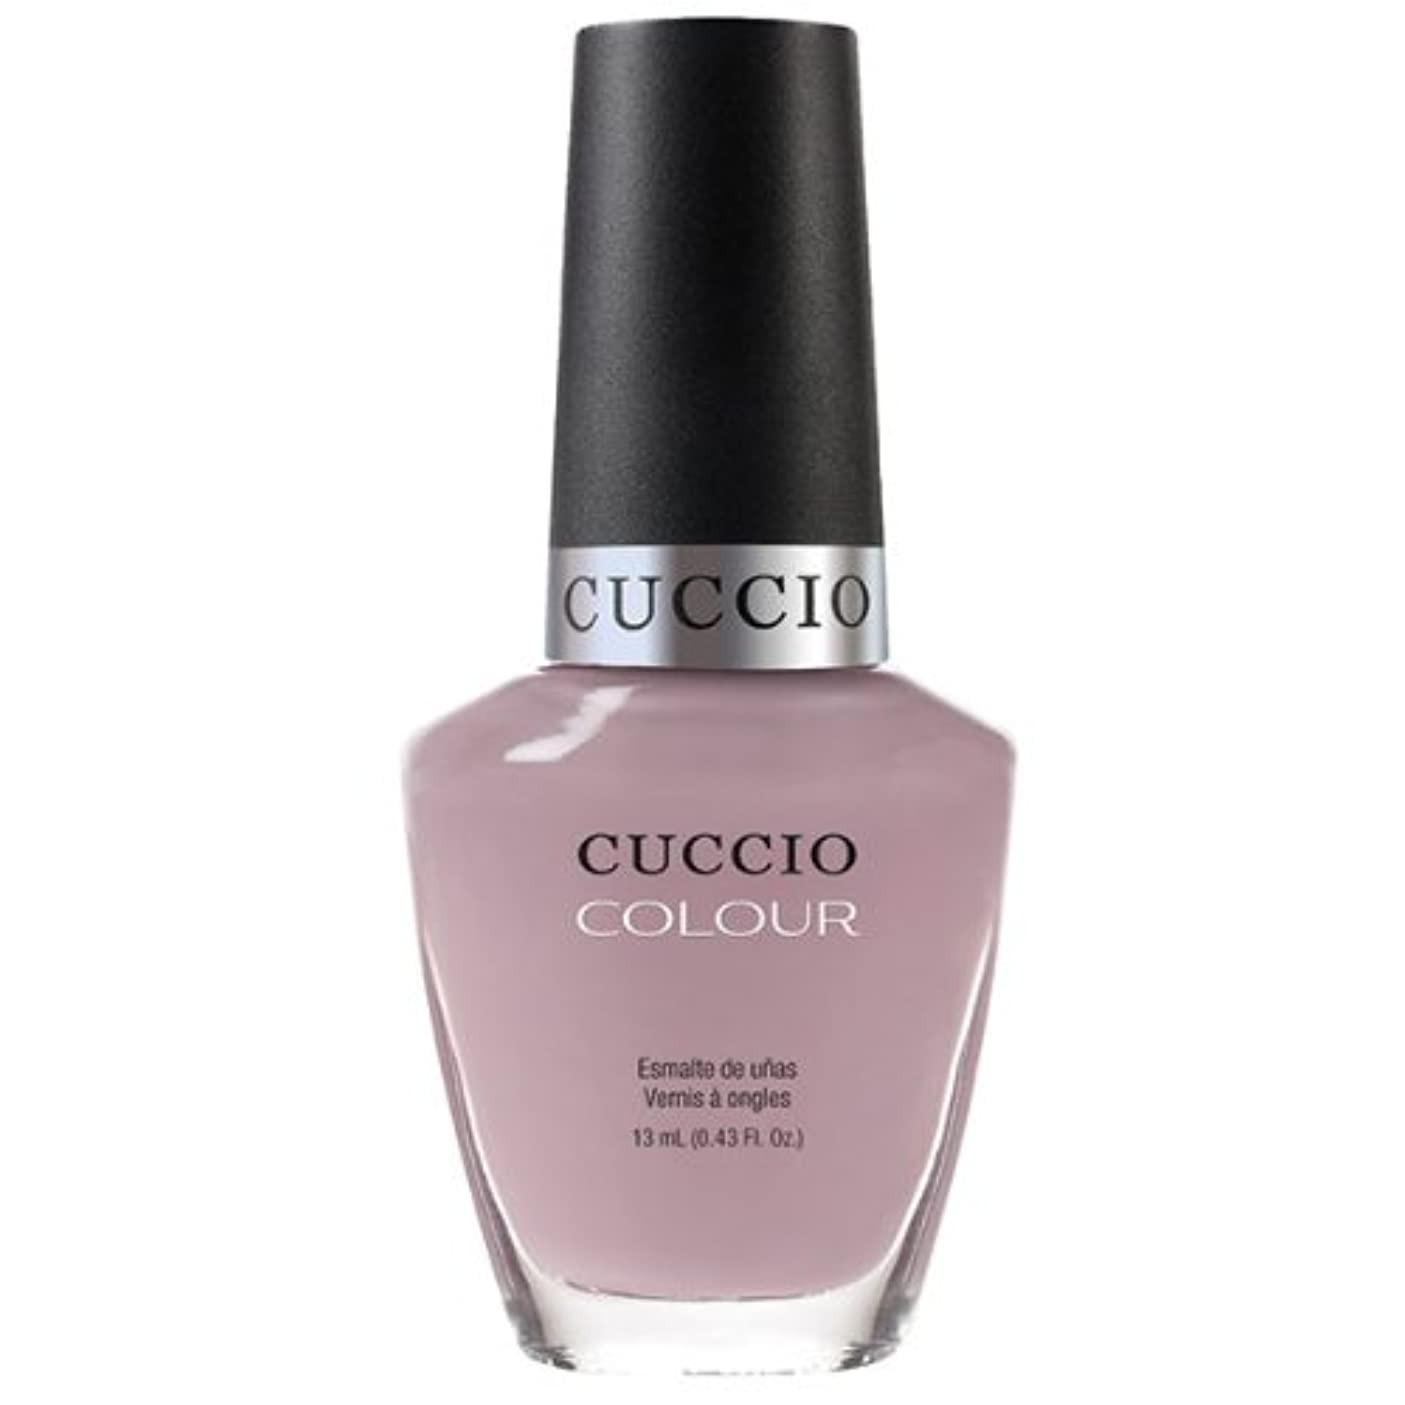 Cuccio Colour Gloss Lacquer - Longing for London - 0.43oz / 13ml